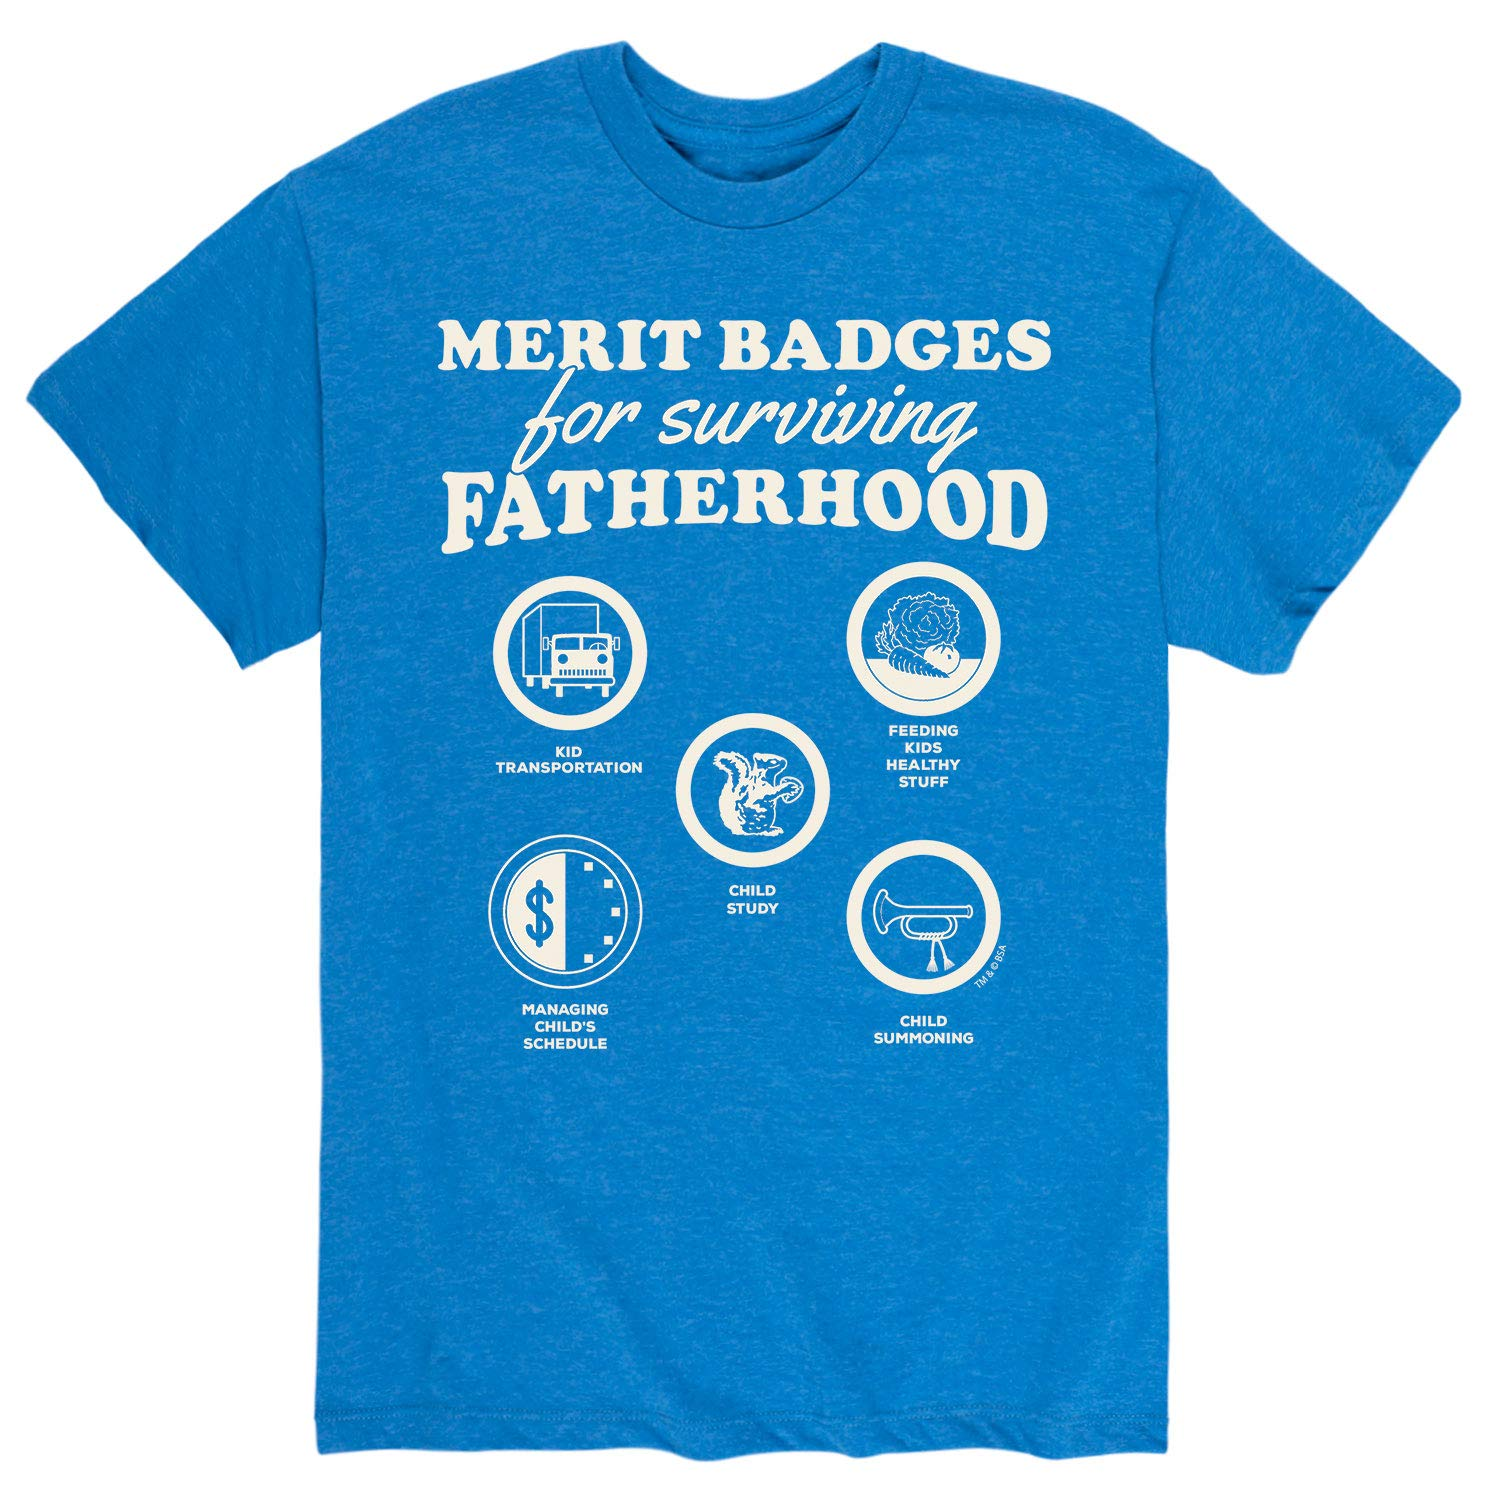 Boy Scouts of America Merit Badges for Fatherhood - Adult Short Sleeve Tee Royal Blue by Instant Message